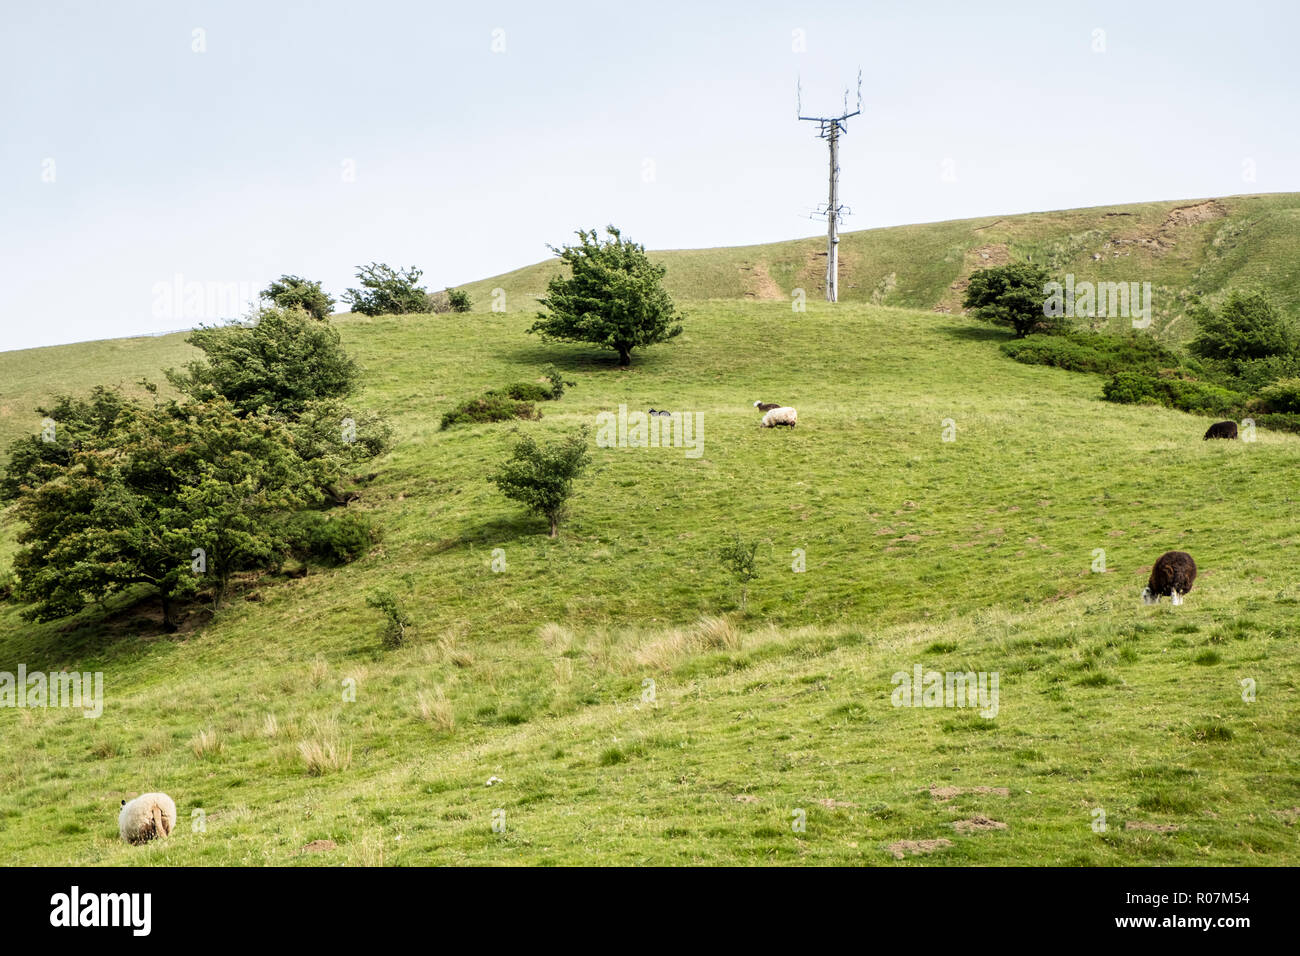 Self supporting telecommunications mast in the countryside, Vale of Edale, Derbyshire, England, UK - Stock Image